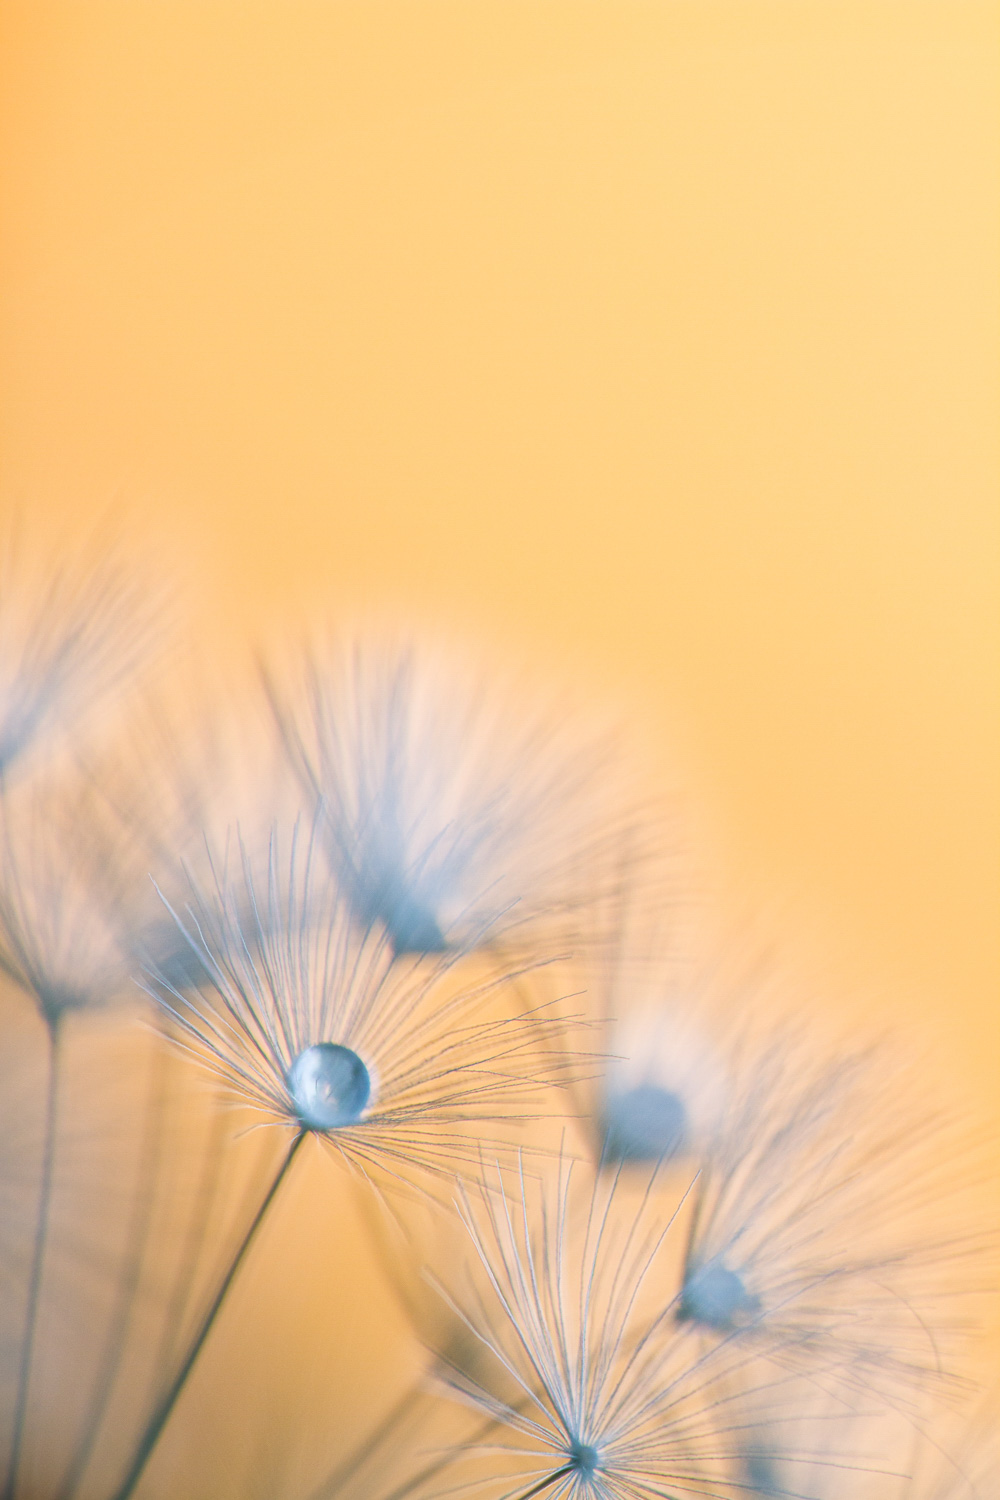 aperture priority mode and shutter priority mode dandelion seed head